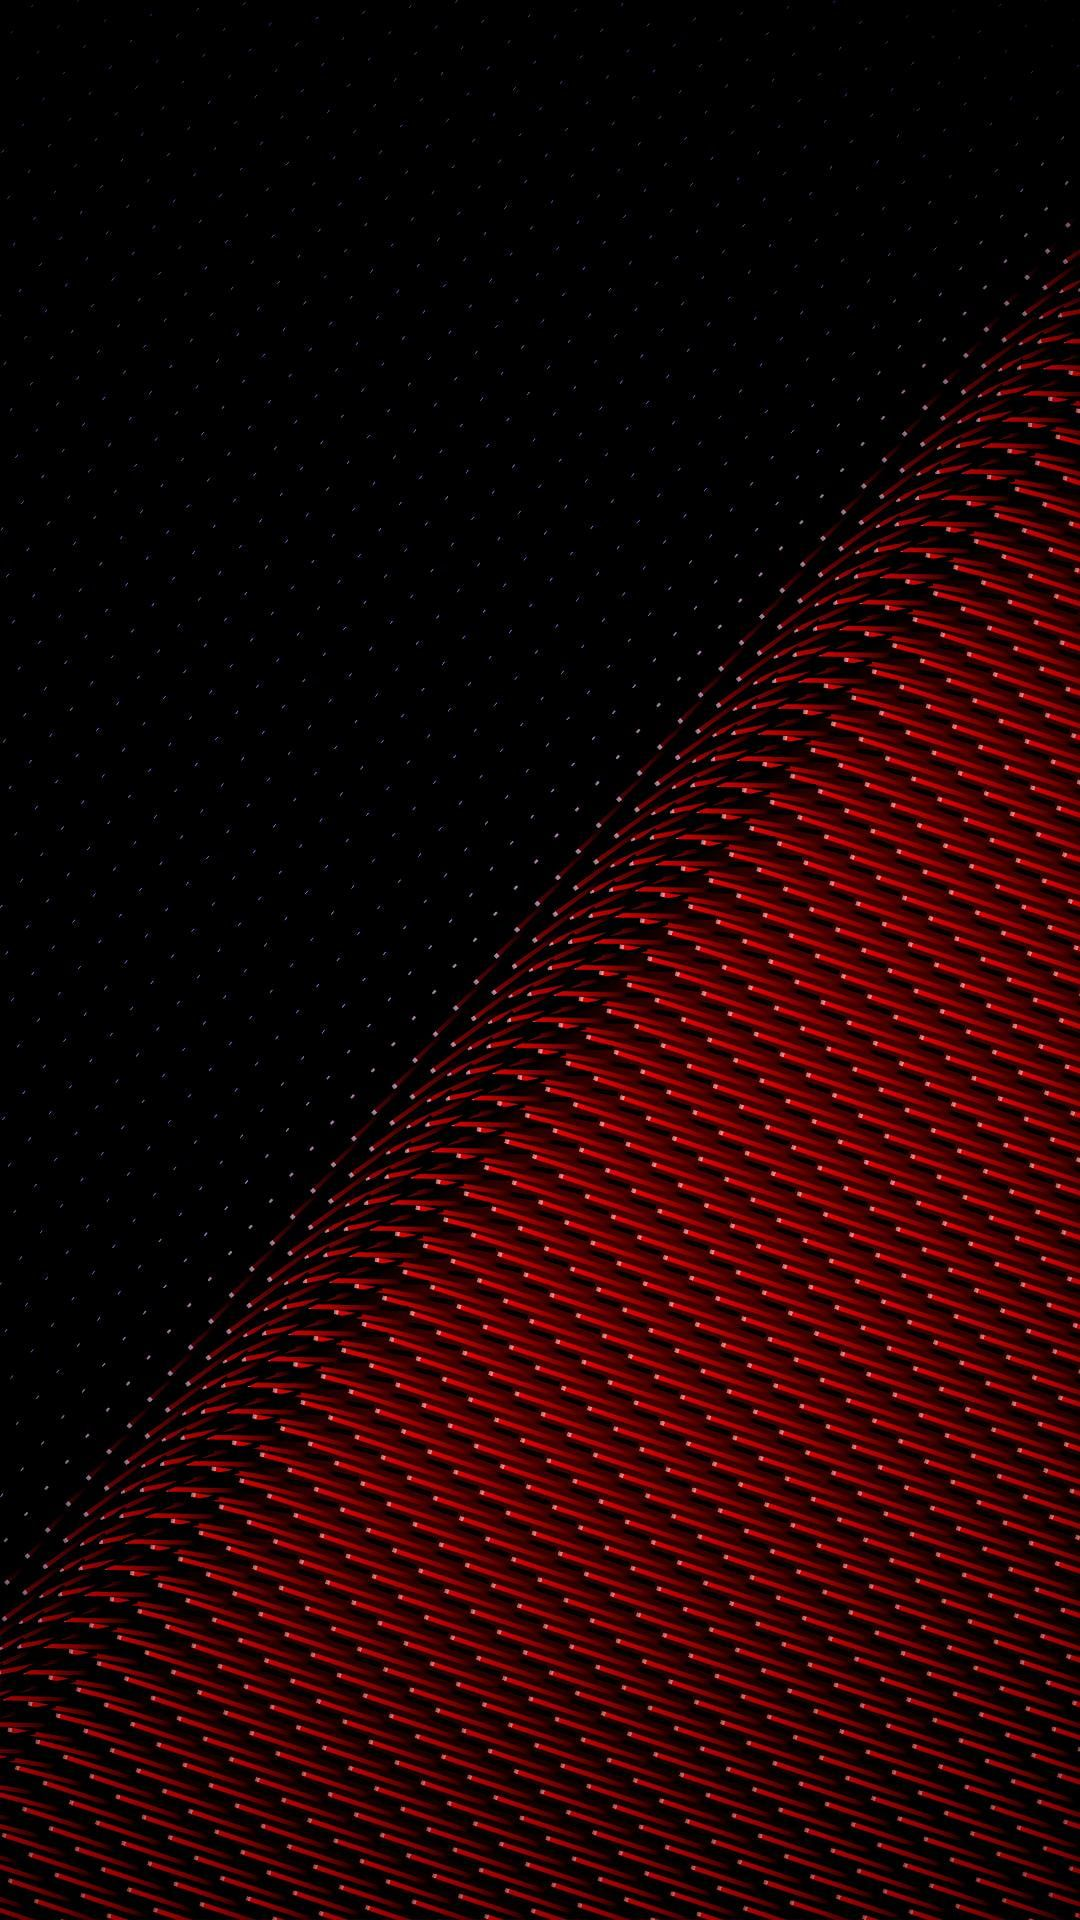 Abstract Amoled Black Background Portrait Display 1080p Wallpaper Hdwallpaper In 2020 Black Wallpaper Iphone Dark Iphone Wallpaper Images Black Wallpaper Iphone